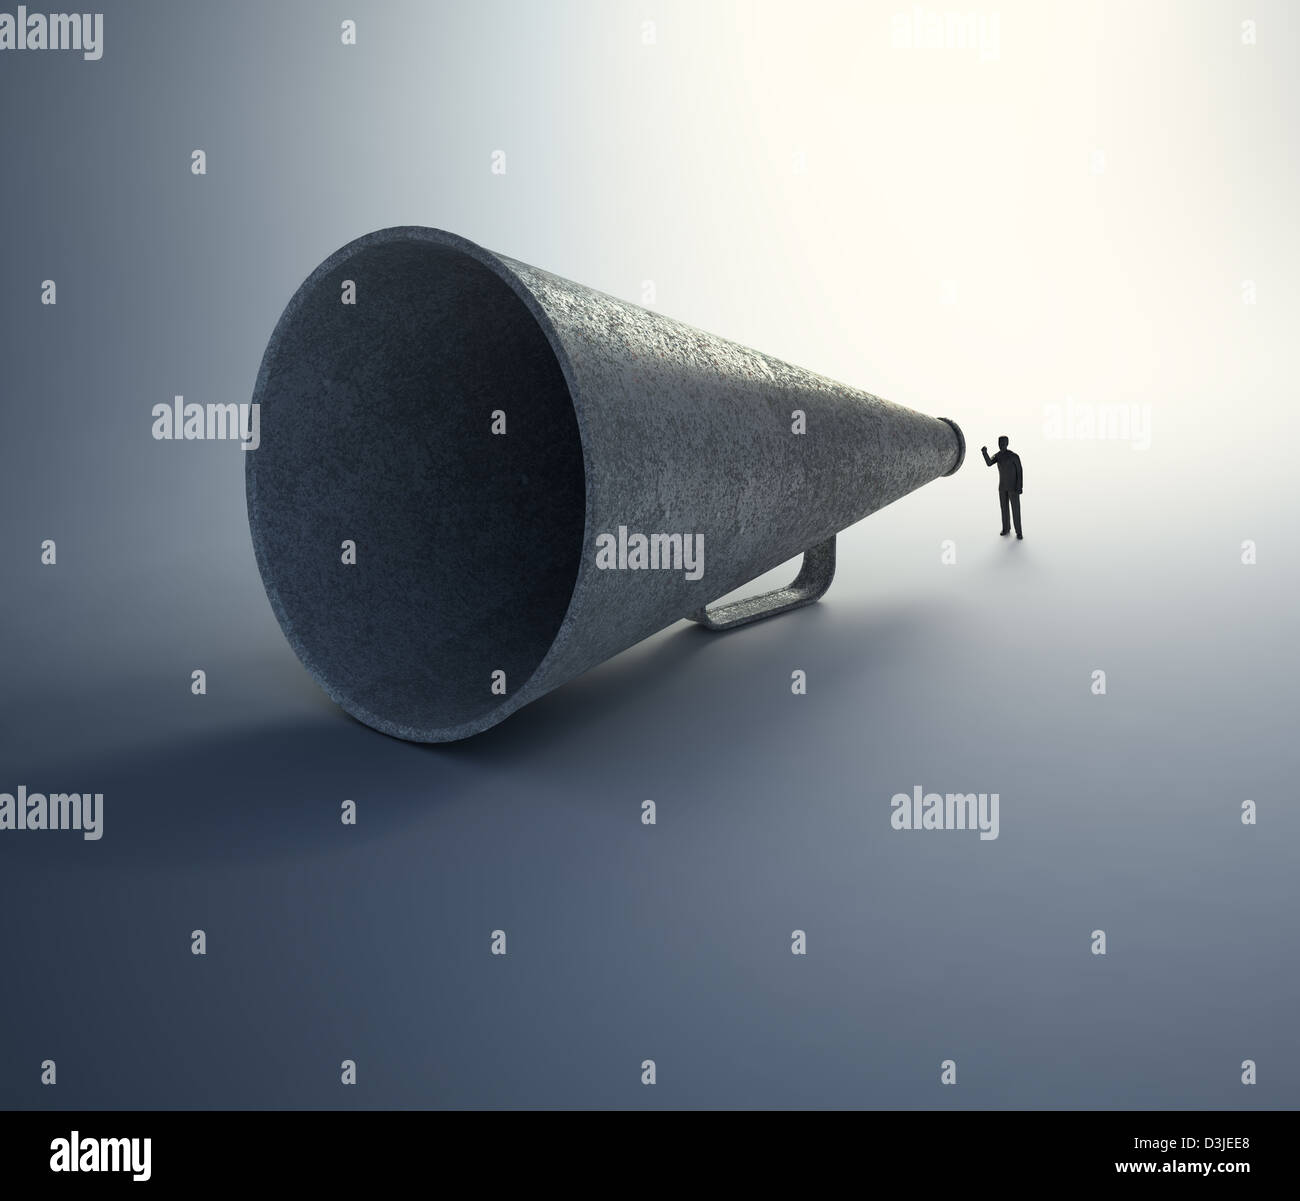 A tiny man speaking through a vintage megaphone - Stock Image